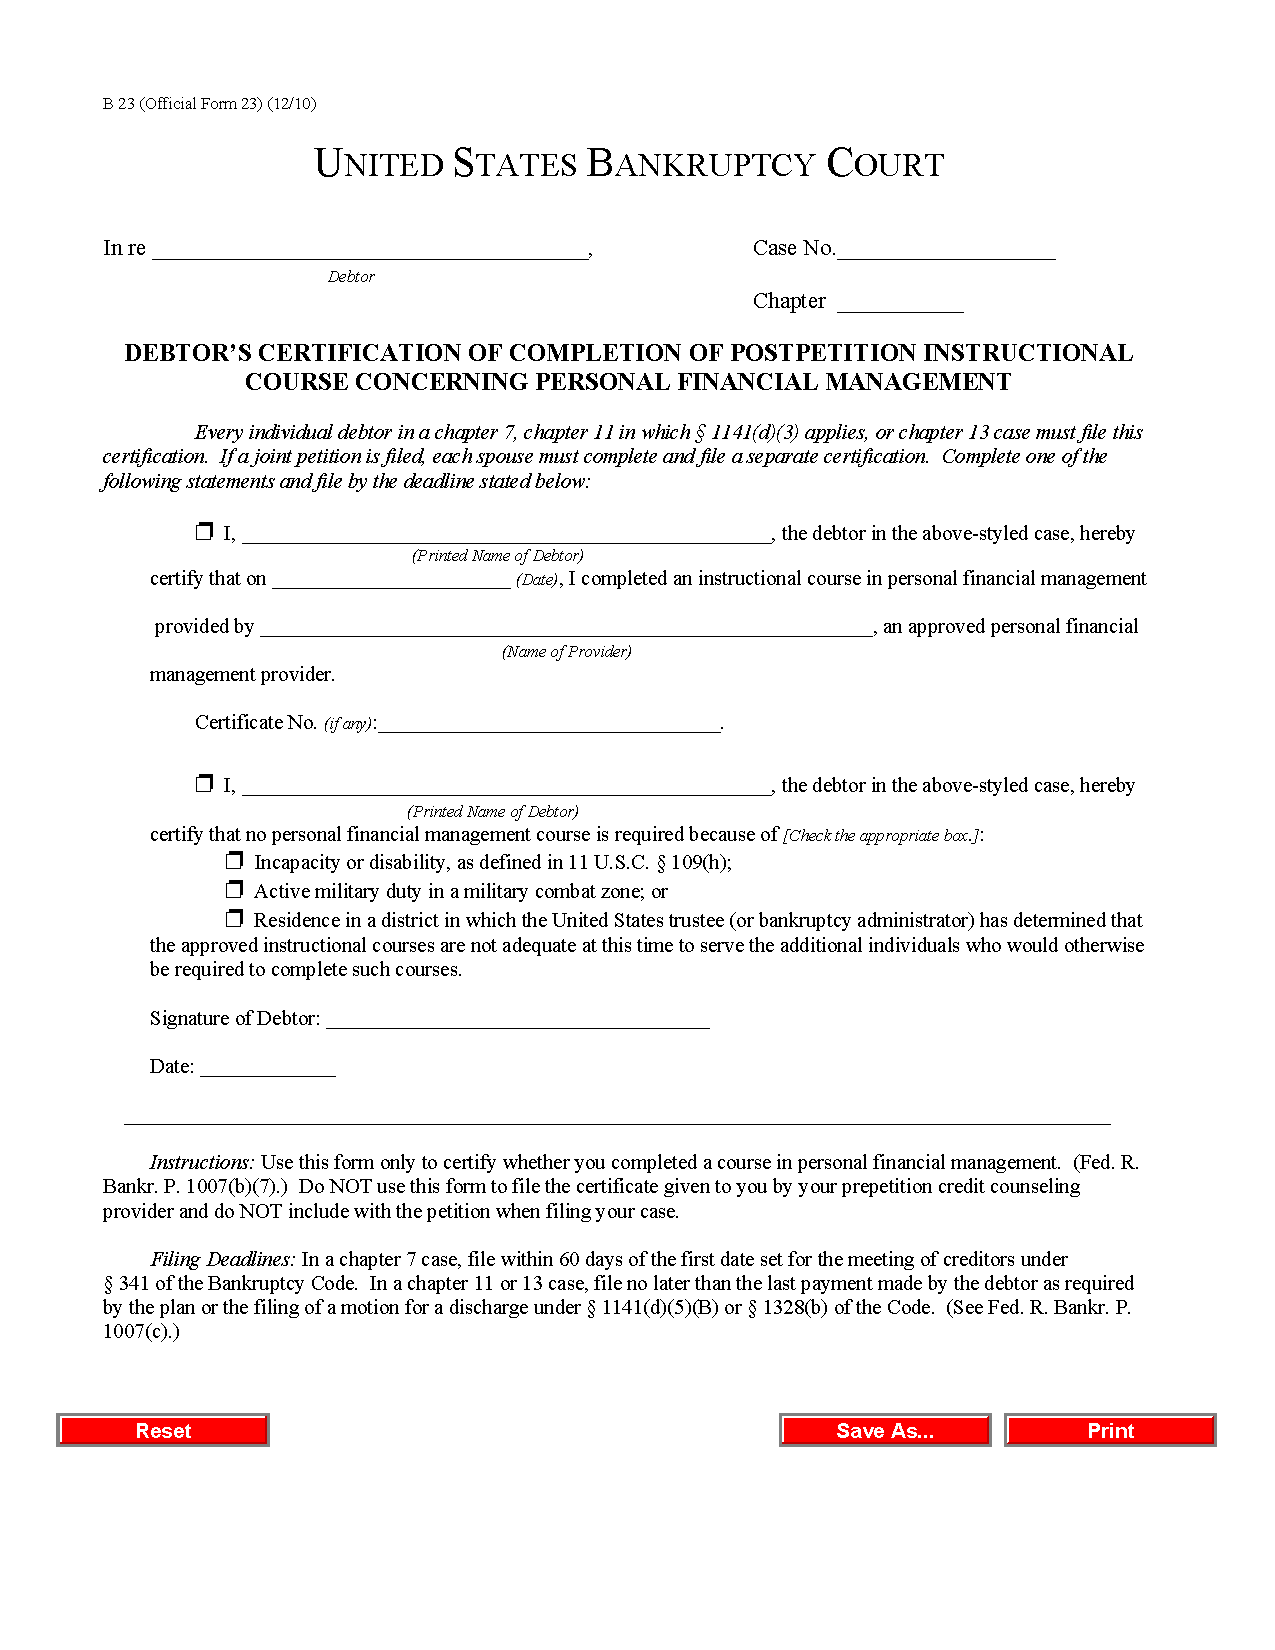 Form B 23 Debtor's Certification of Completion of Instructional ...